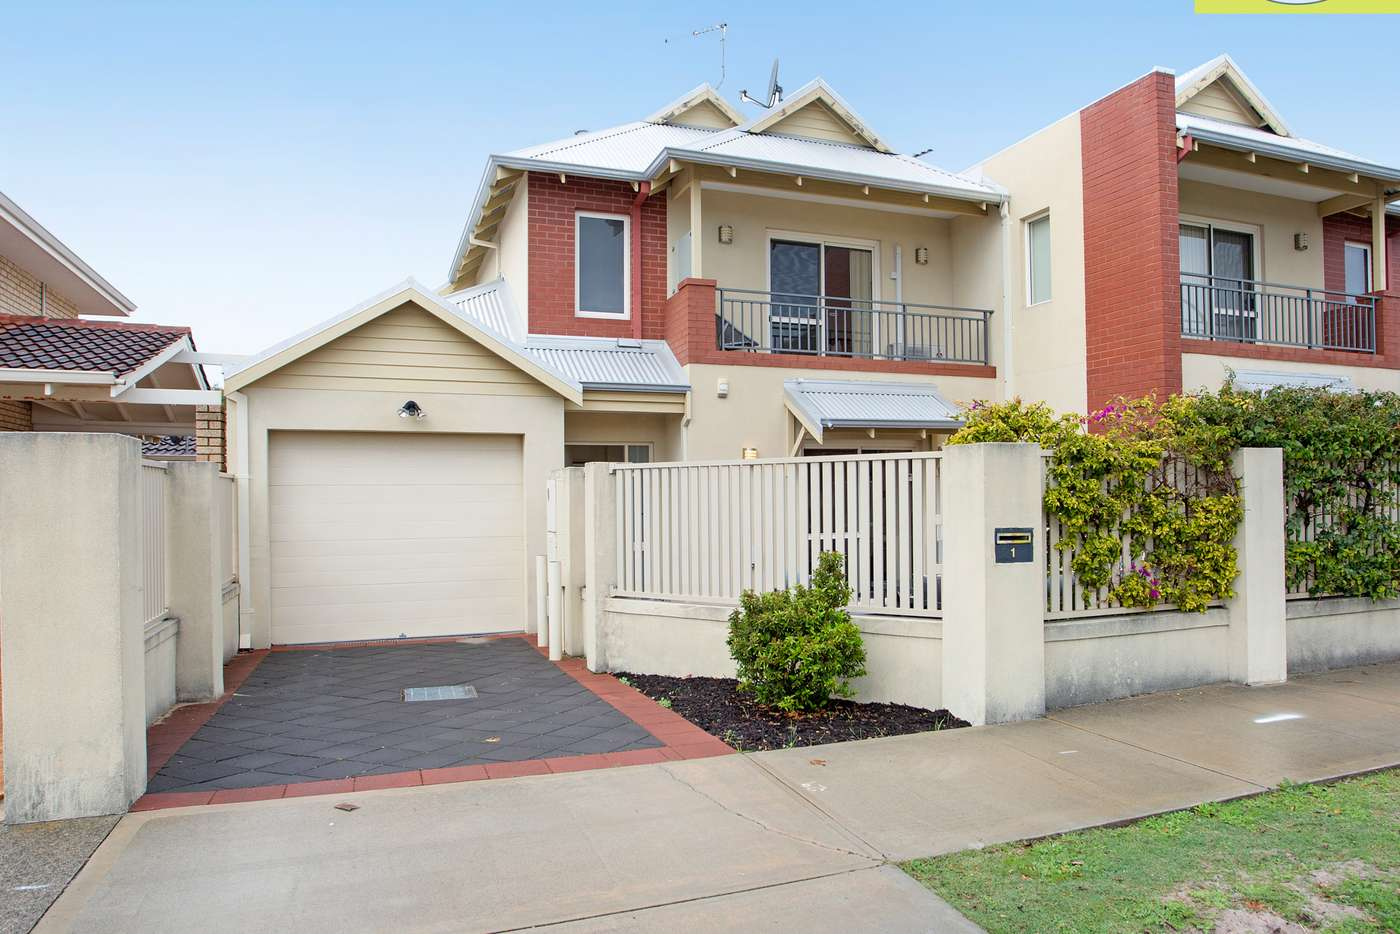 Main view of Homely house listing, 1/12 Mackie St, Victoria Park WA 6100